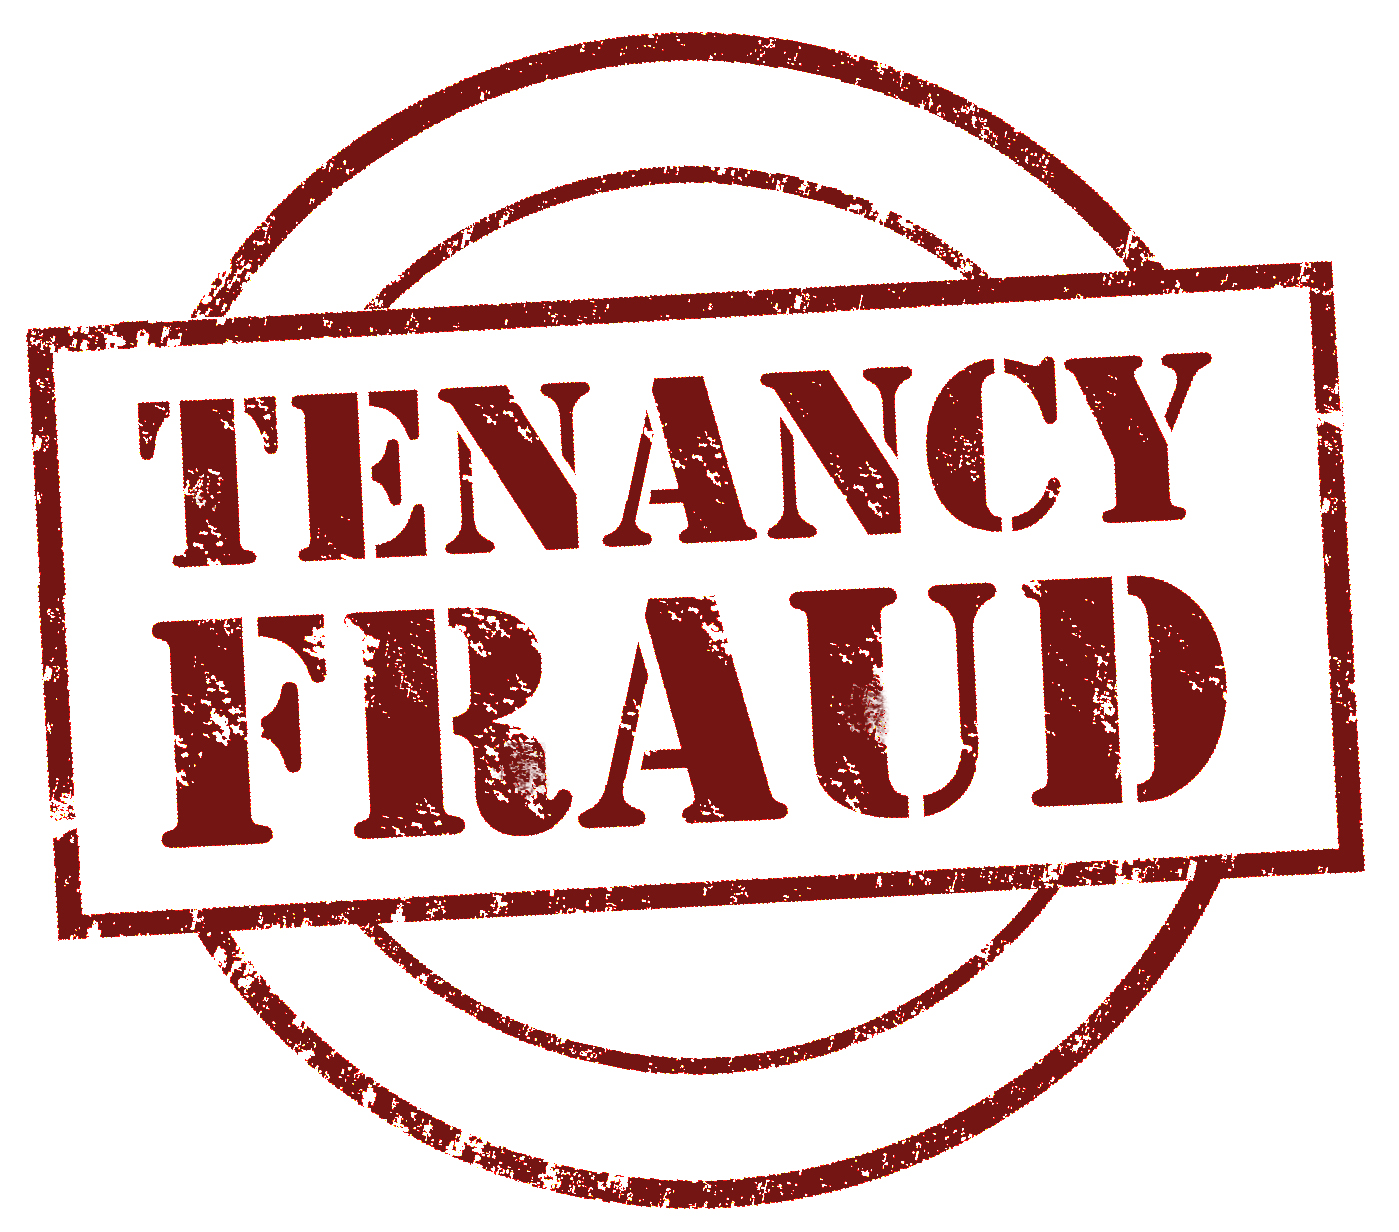 Helping to identify Tenancy Fraud